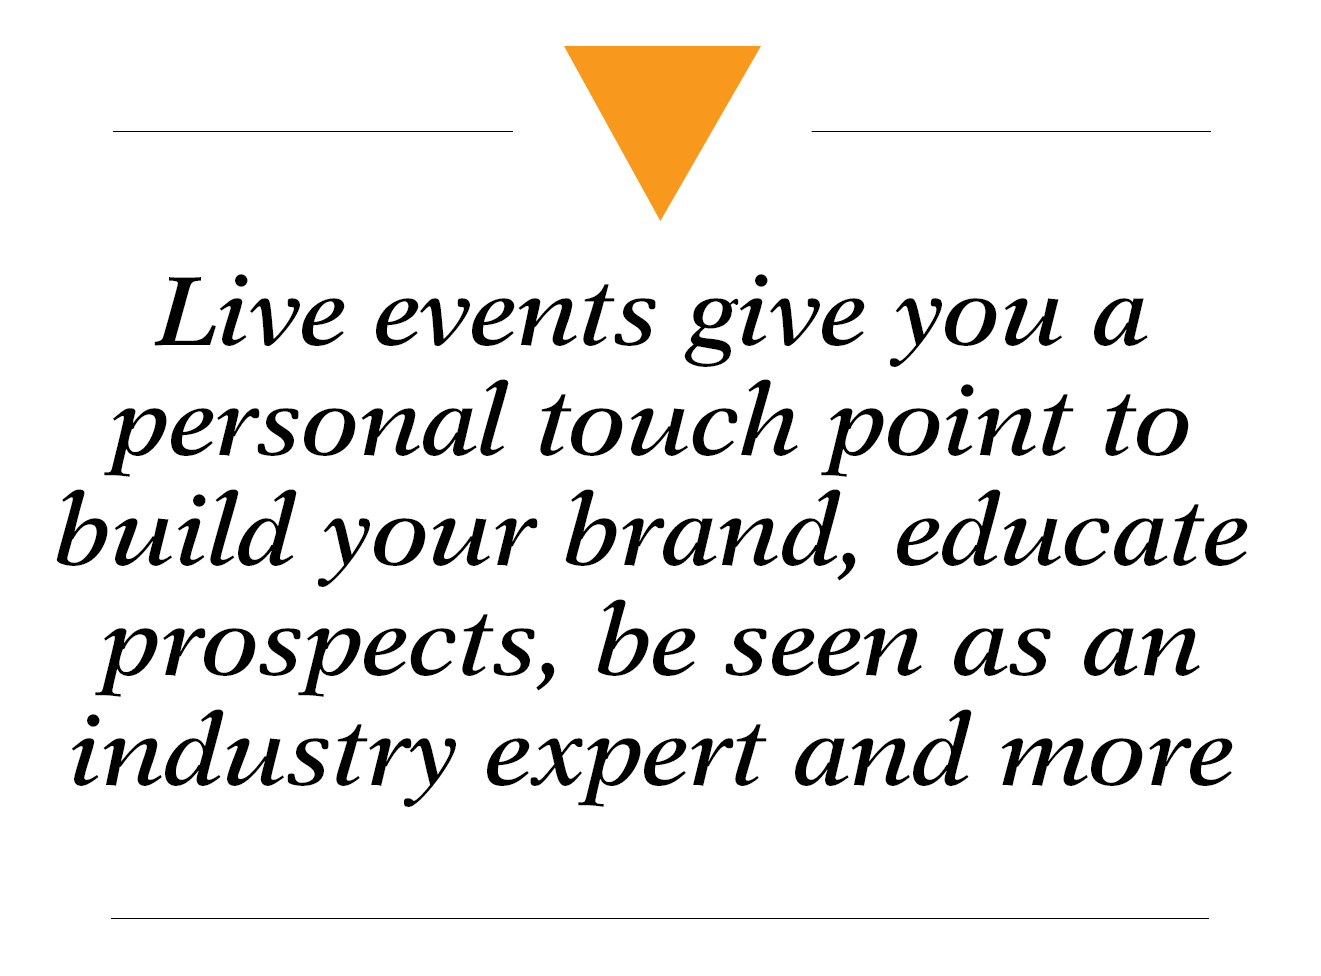 Live events give you a personal touch point to build your brand, educate prospects, be seen as an industry expert and more - event marketing